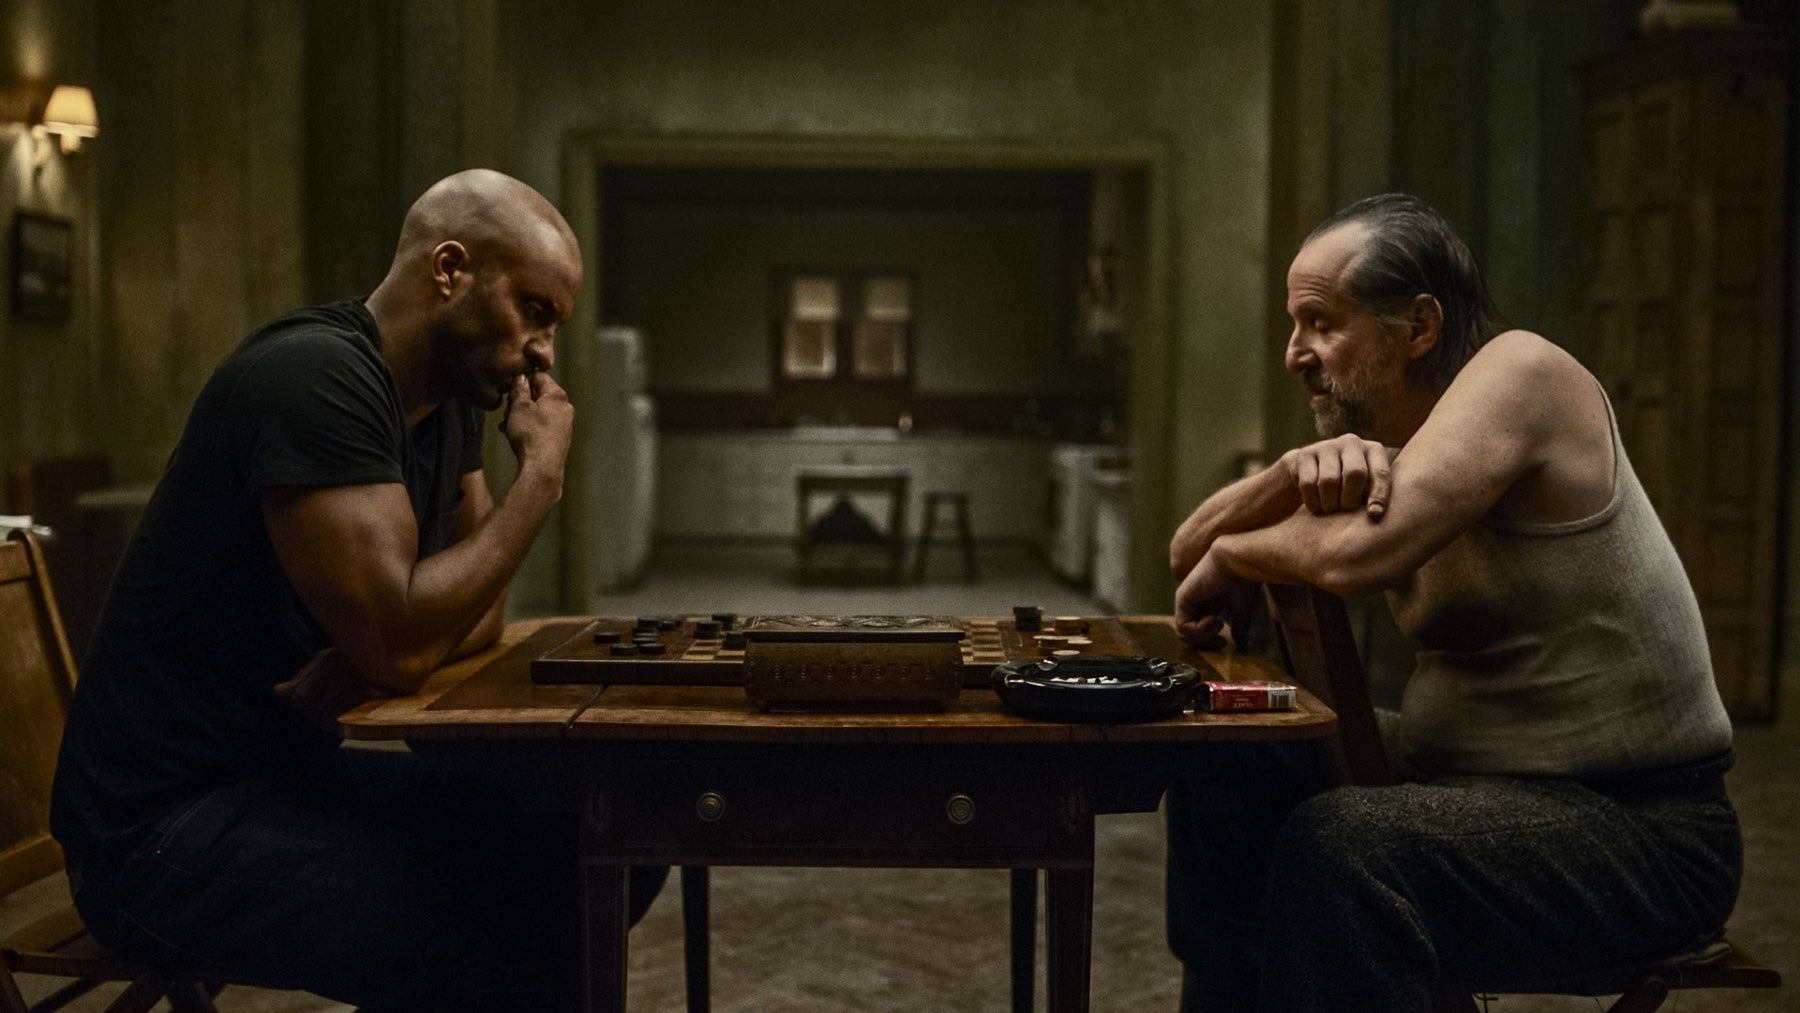 On American Gods, Remembering The Good Old Days Only Makes The Present More Painful